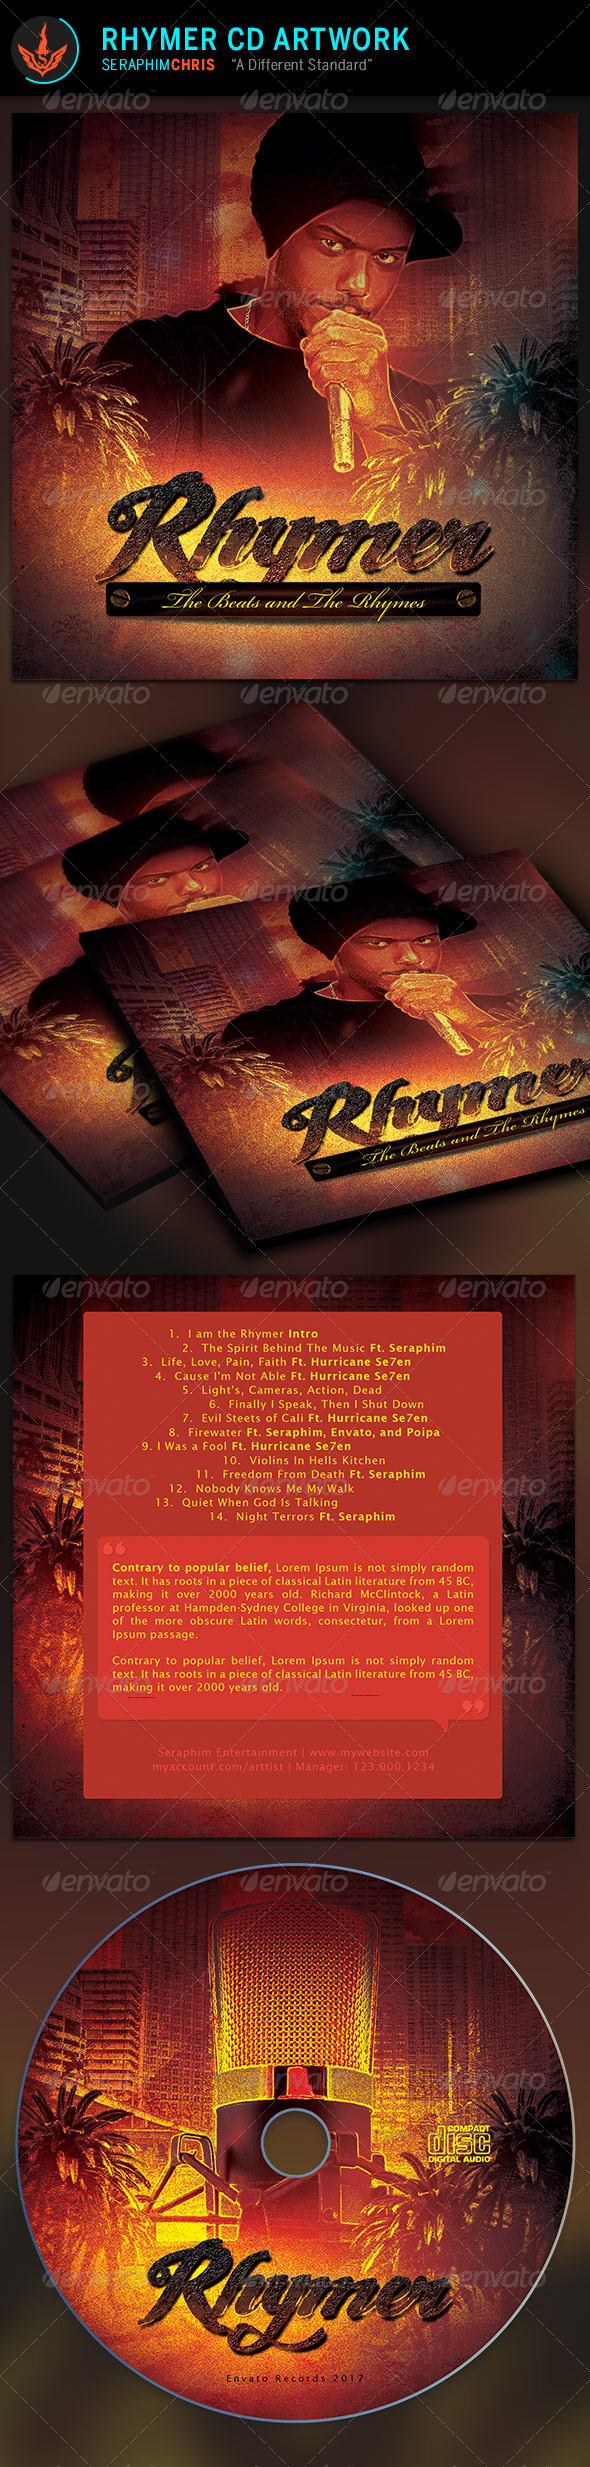 Rhymer CD Artwork Template - CD & DVD Artwork Print Templates